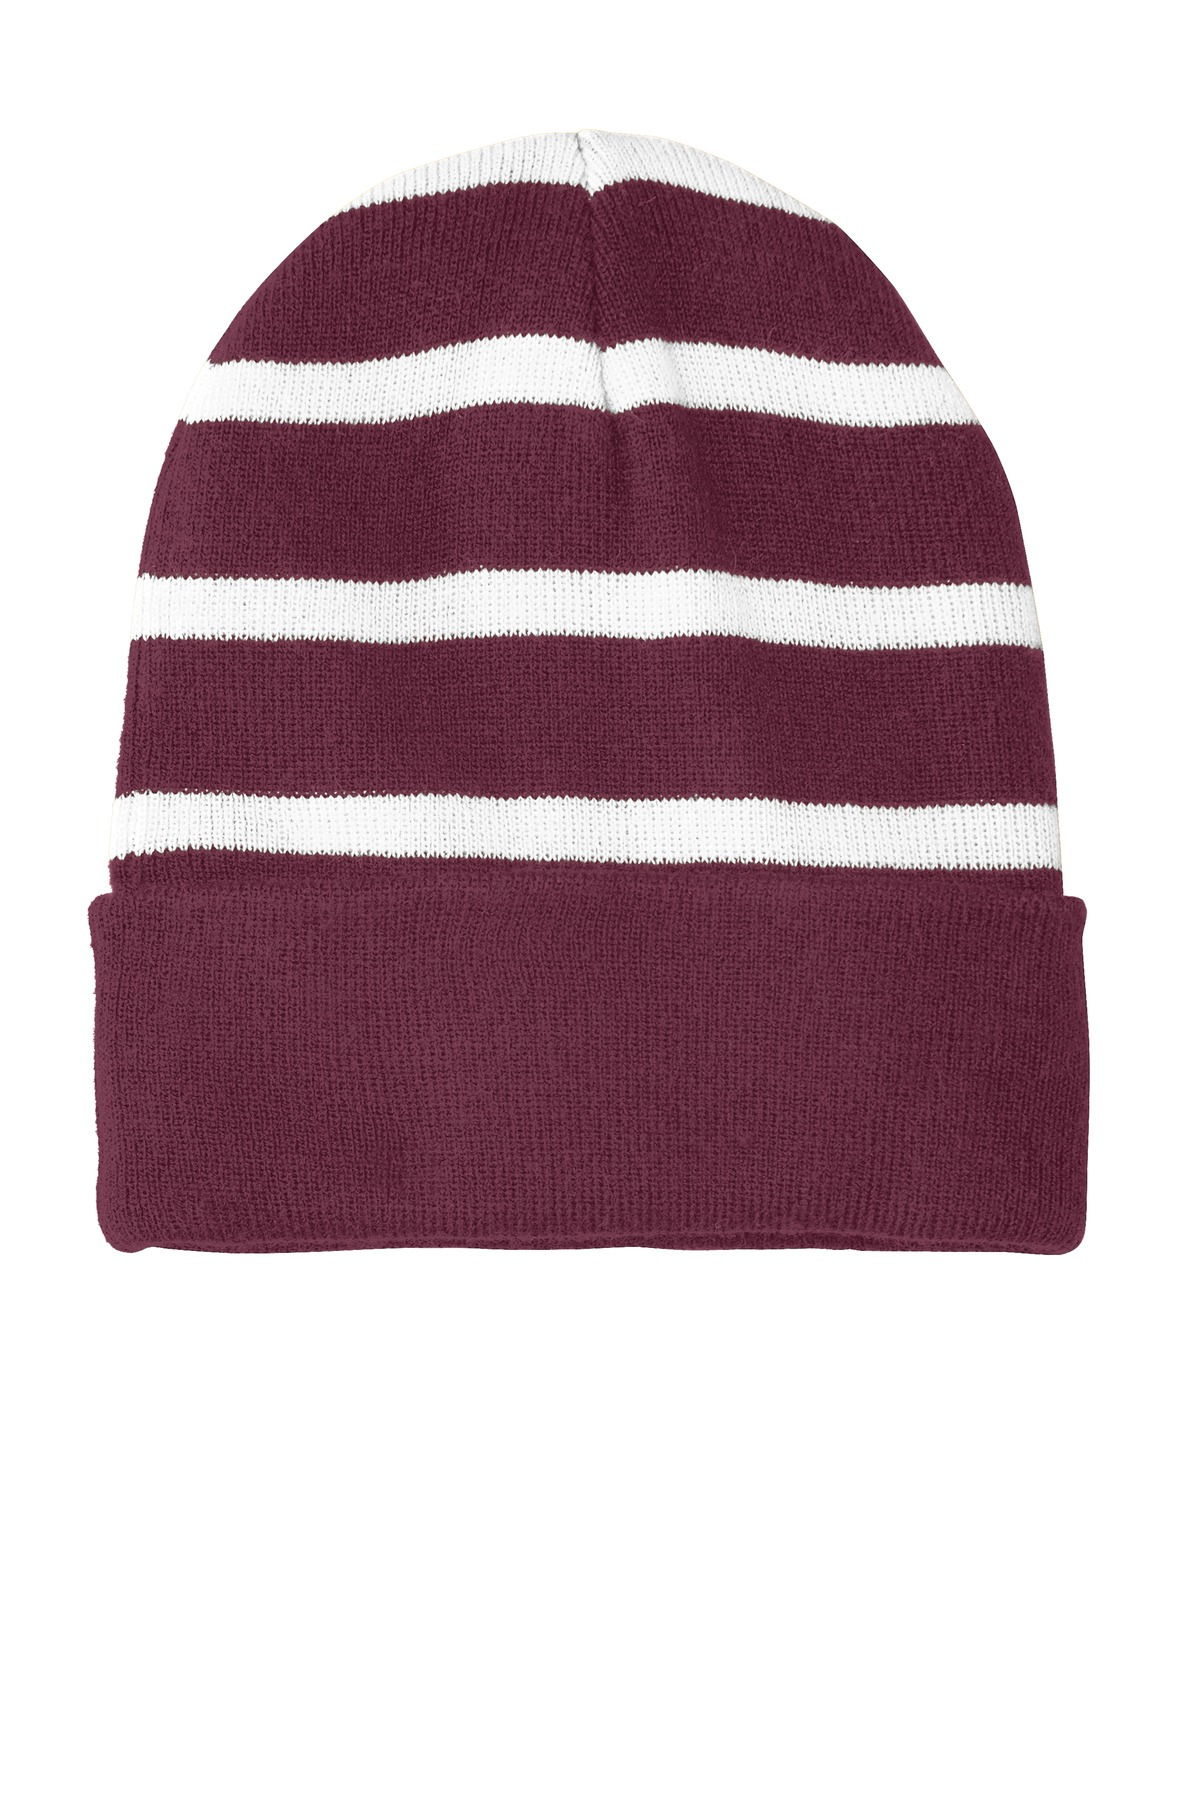 Sport-Tek ®  Striped Beanie with Solid Band. STC31 - Maroon/ White